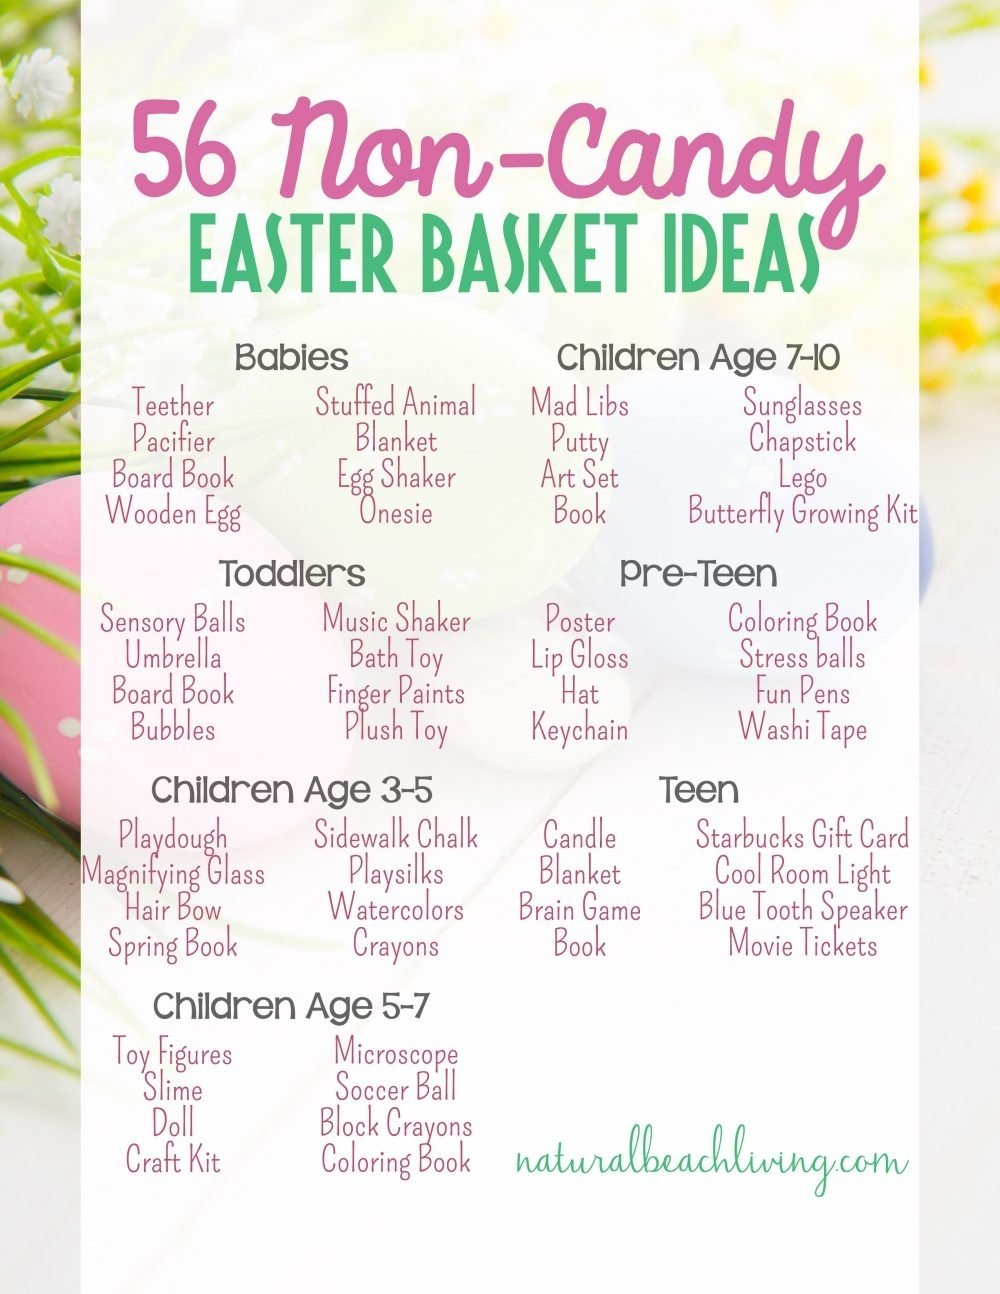 56 non-candy easter basket ideas for kids - natural beach living